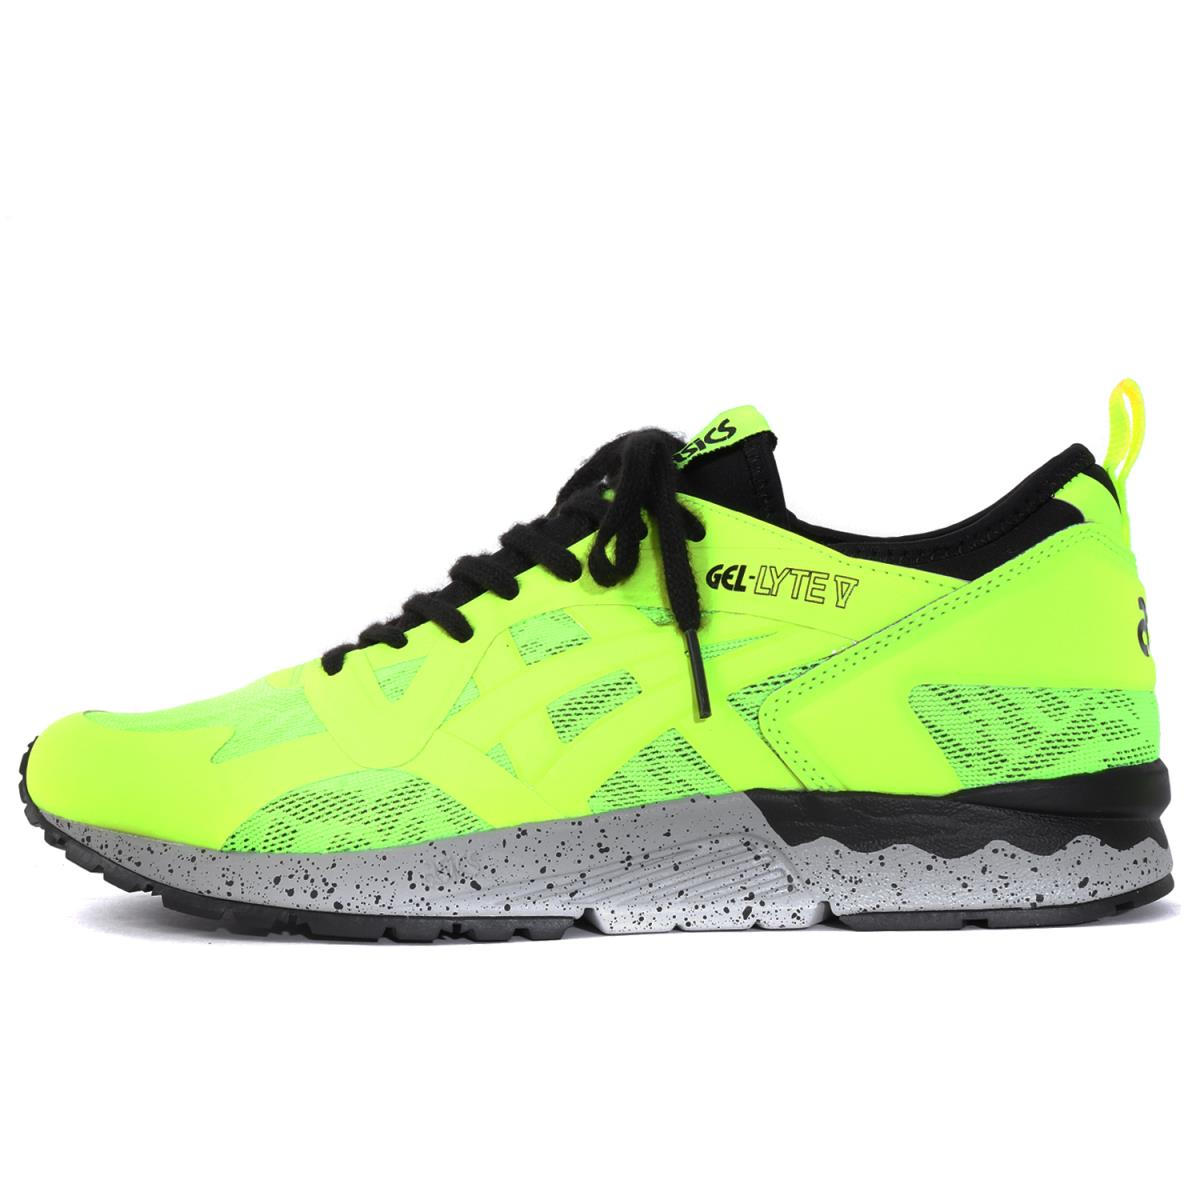 533a0e52caa3 BEEGLE by Boo-Bee  asics (ASICS) GEL-LYTE V NS(HY7M1) safety yellow ...